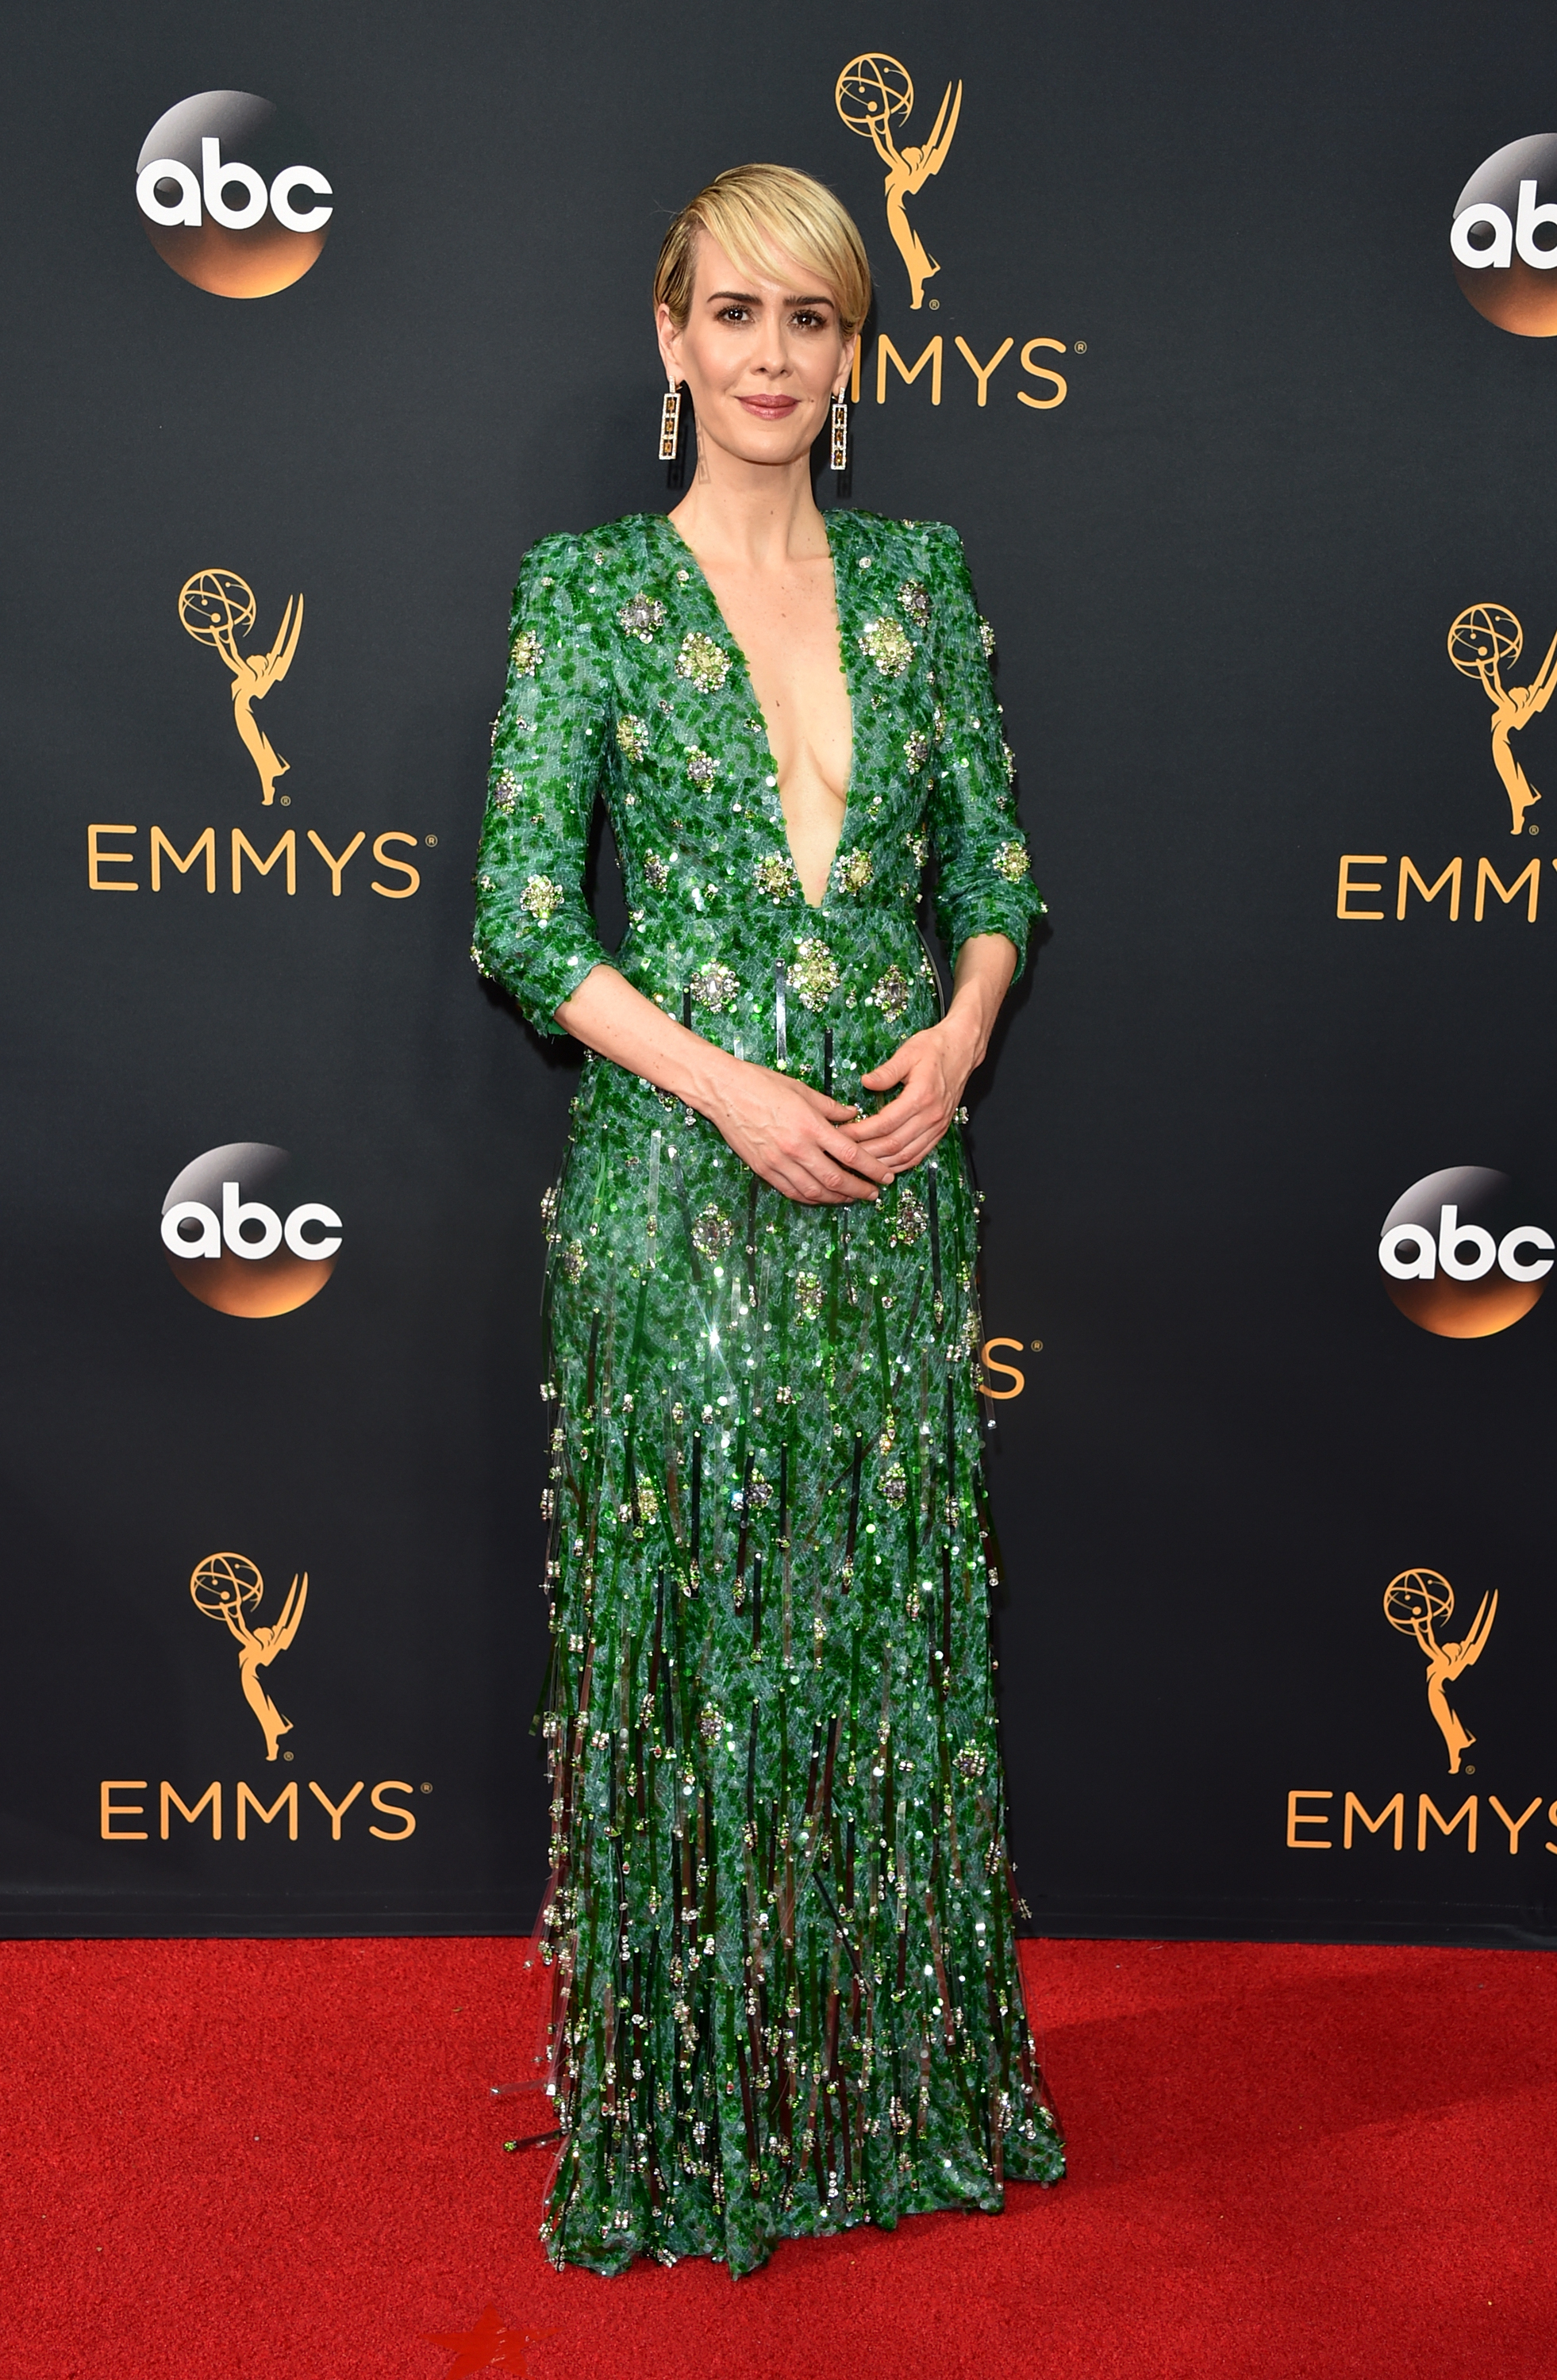 Sarah Paulson arrives at the 68th Annual Primetime Emmy Awards at Microsoft Theater on Sept. 18, 2016 in Los Angeles.